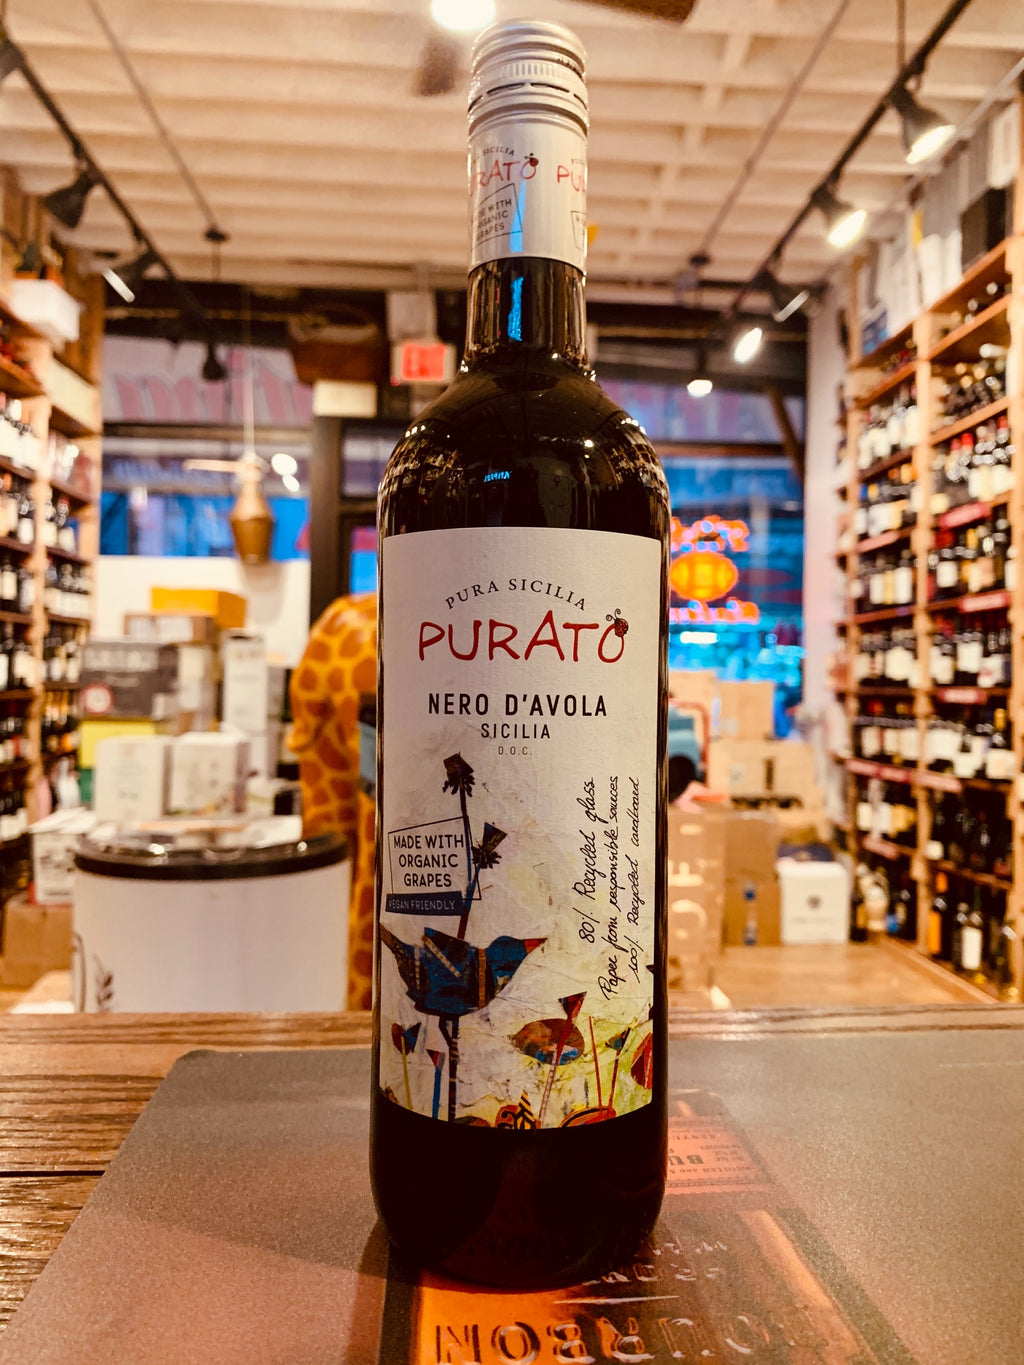 Purato Nero d'Avola 750mL 2018